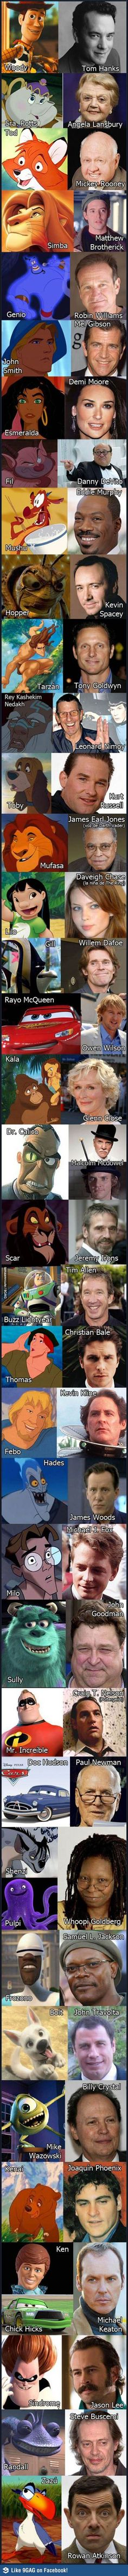 Who voiced who---Disney characters